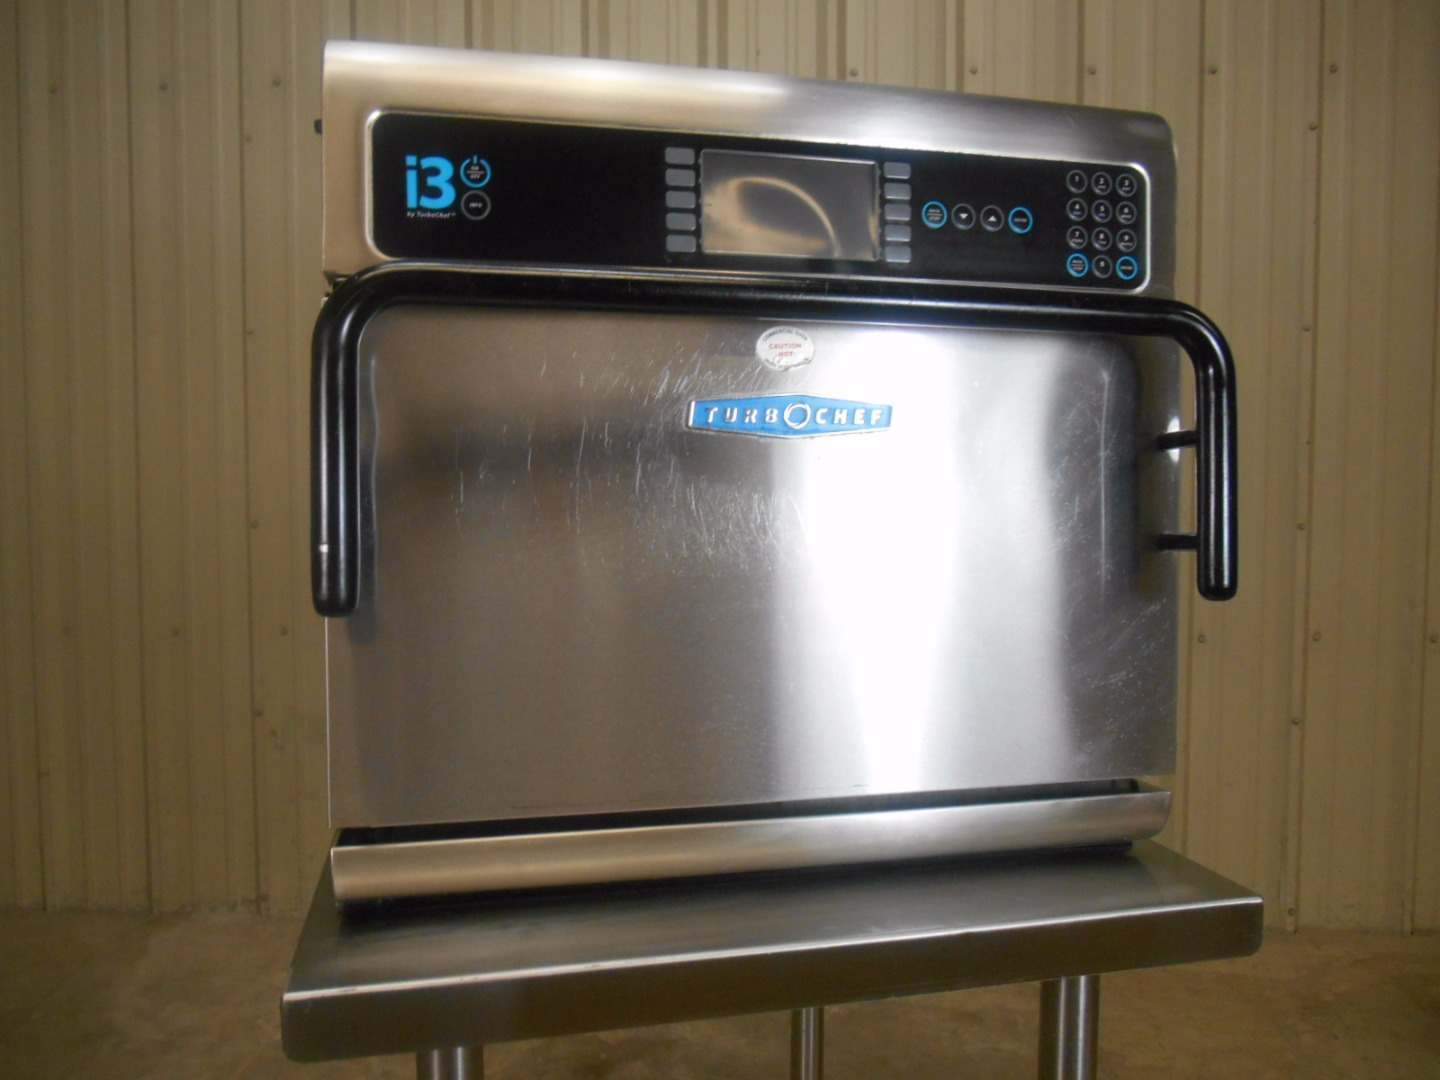 Used Turbochef I3 2011 Convection Microwave Rapid Cook Oven w/ Stand